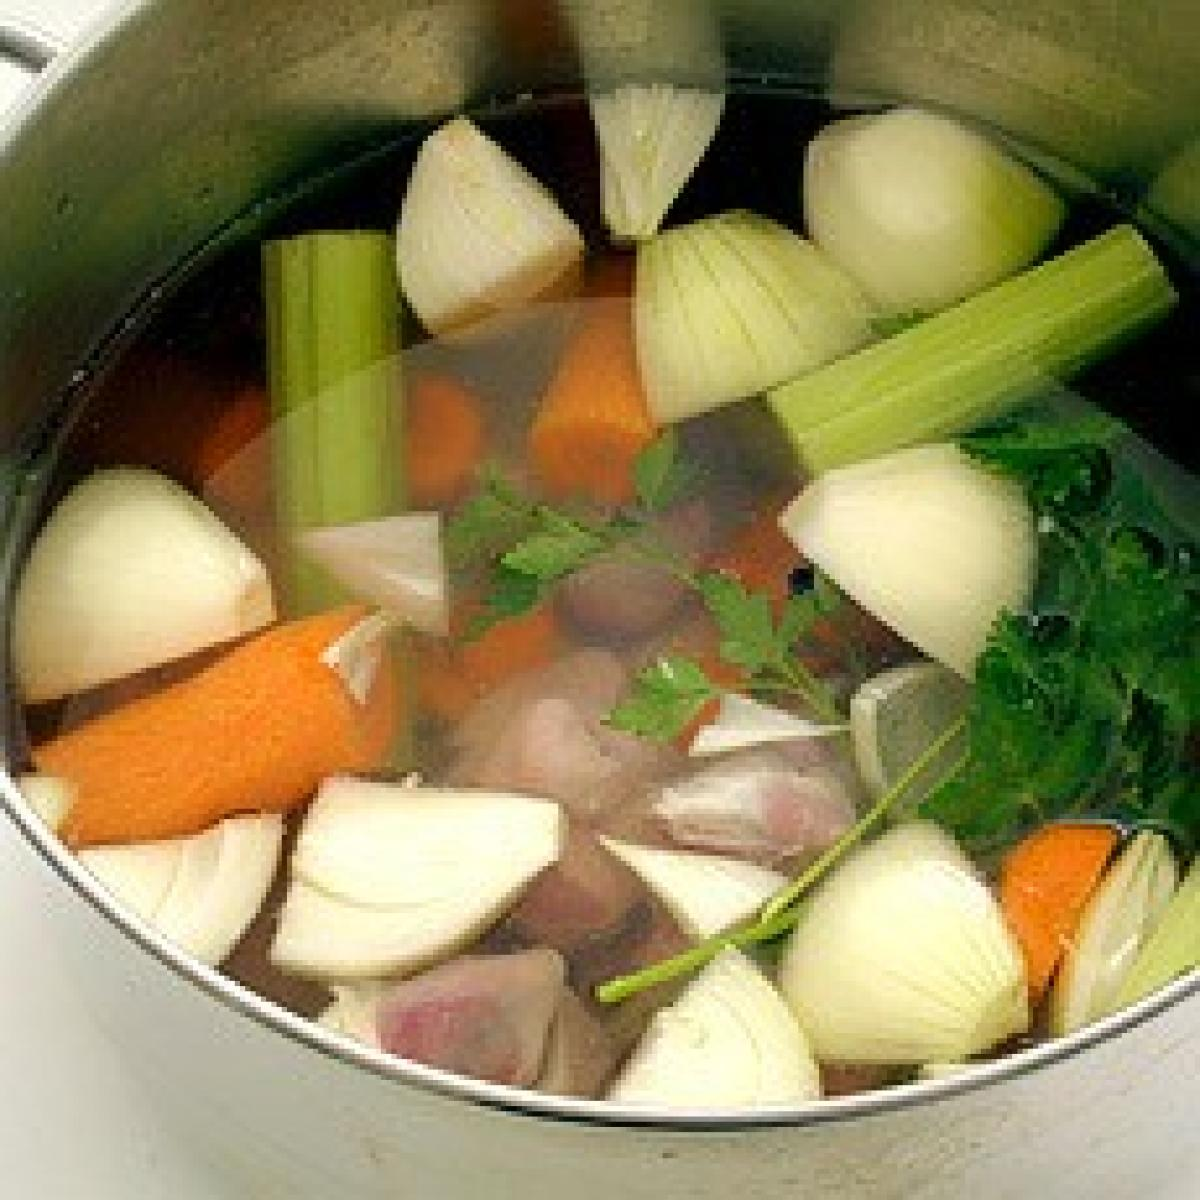 A picture of Delia's Goose (Pheasant or Duck) Giblet Stock recipe